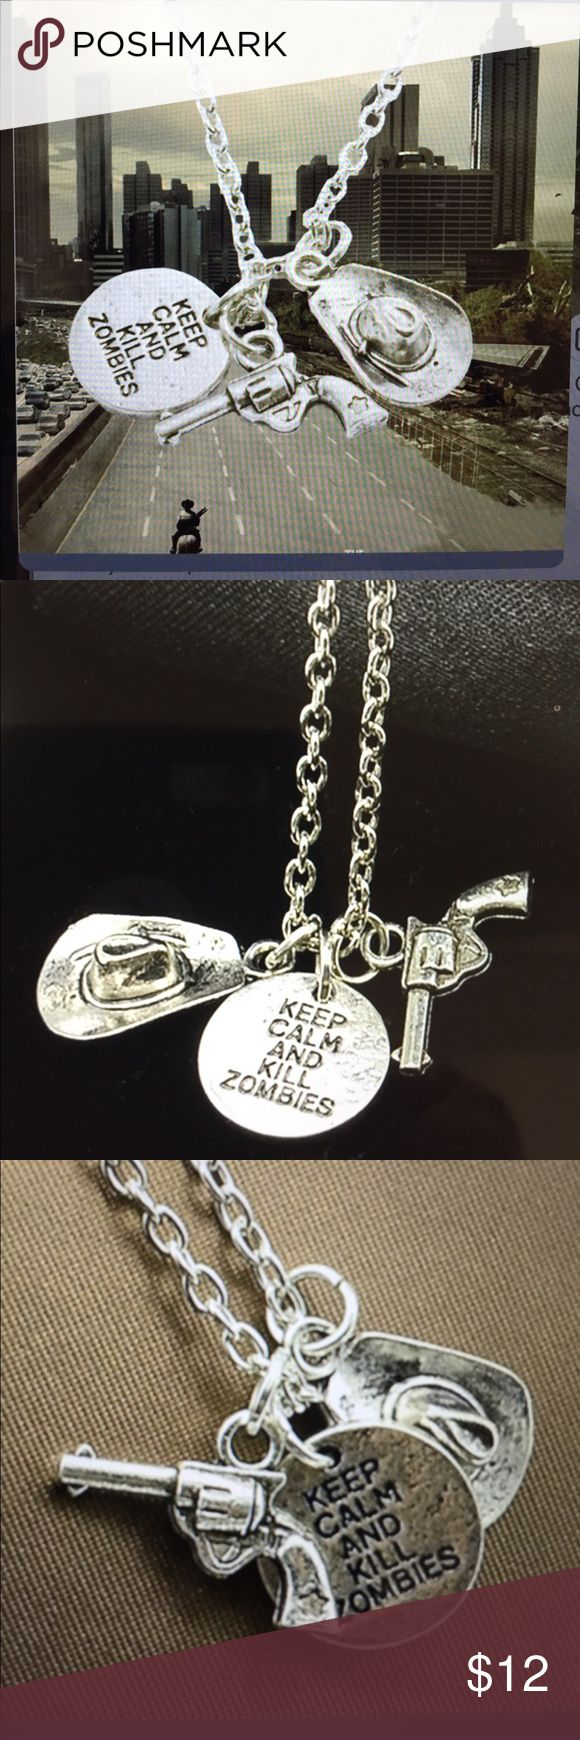 The Walking Dead Fashion Silver Necklace/New Great silver tone The Walking Dead fashion and unique necklace with Rick's handgun and hat....comes with a nice gift box The Walking Dead Jewelry Necklaces